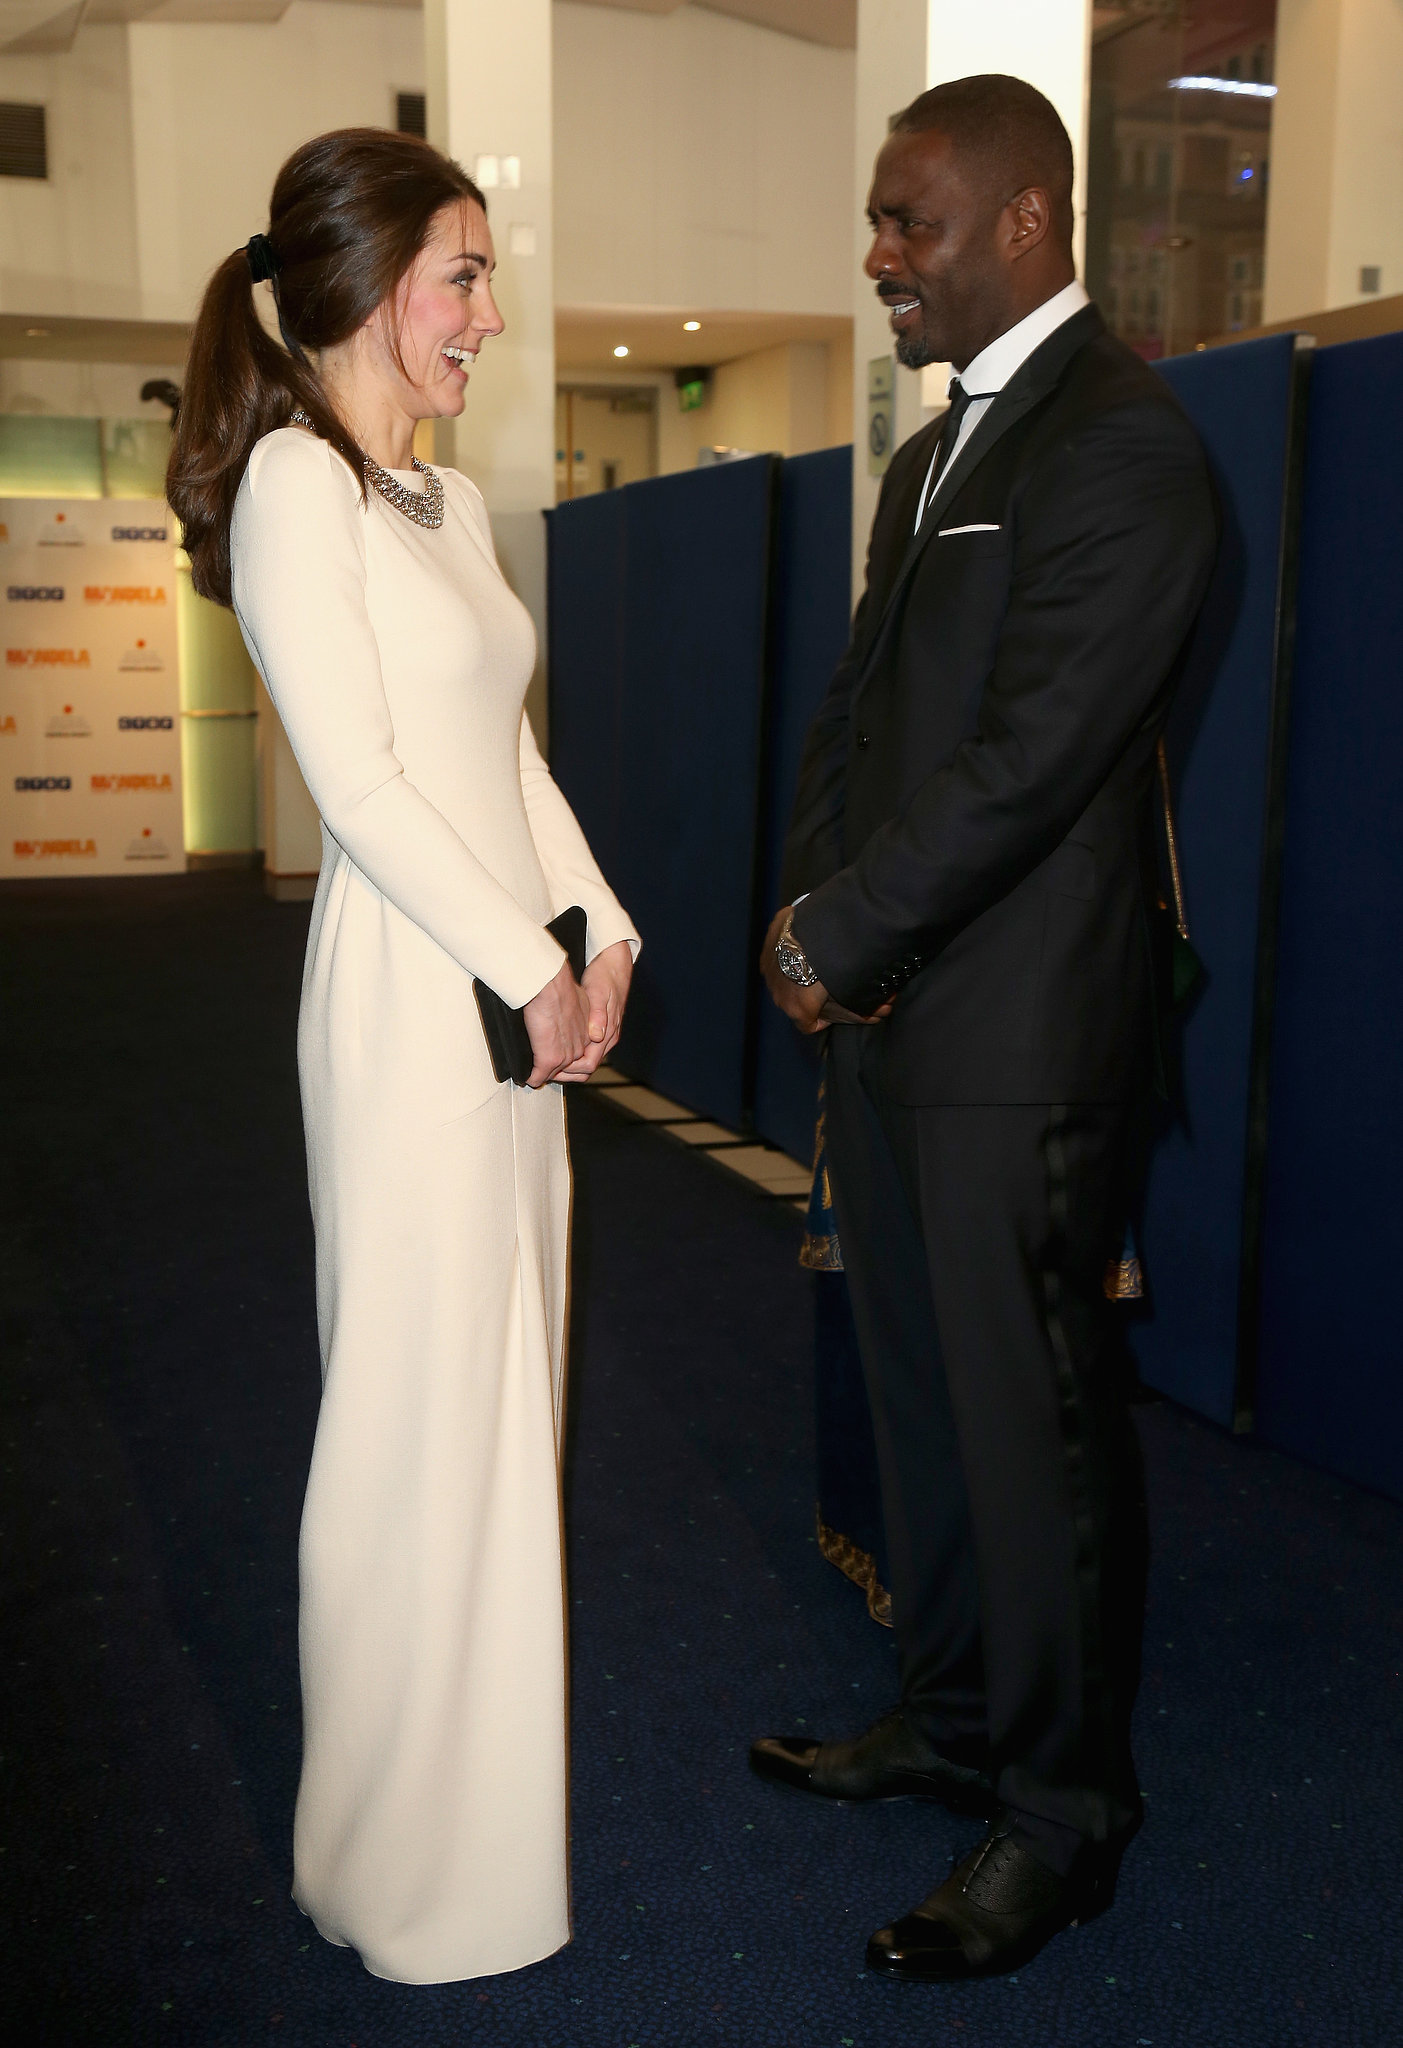 Kate got to meet Idris Elba at the premiere of Mandela: Long Walk to Freedom in London in December 2013.